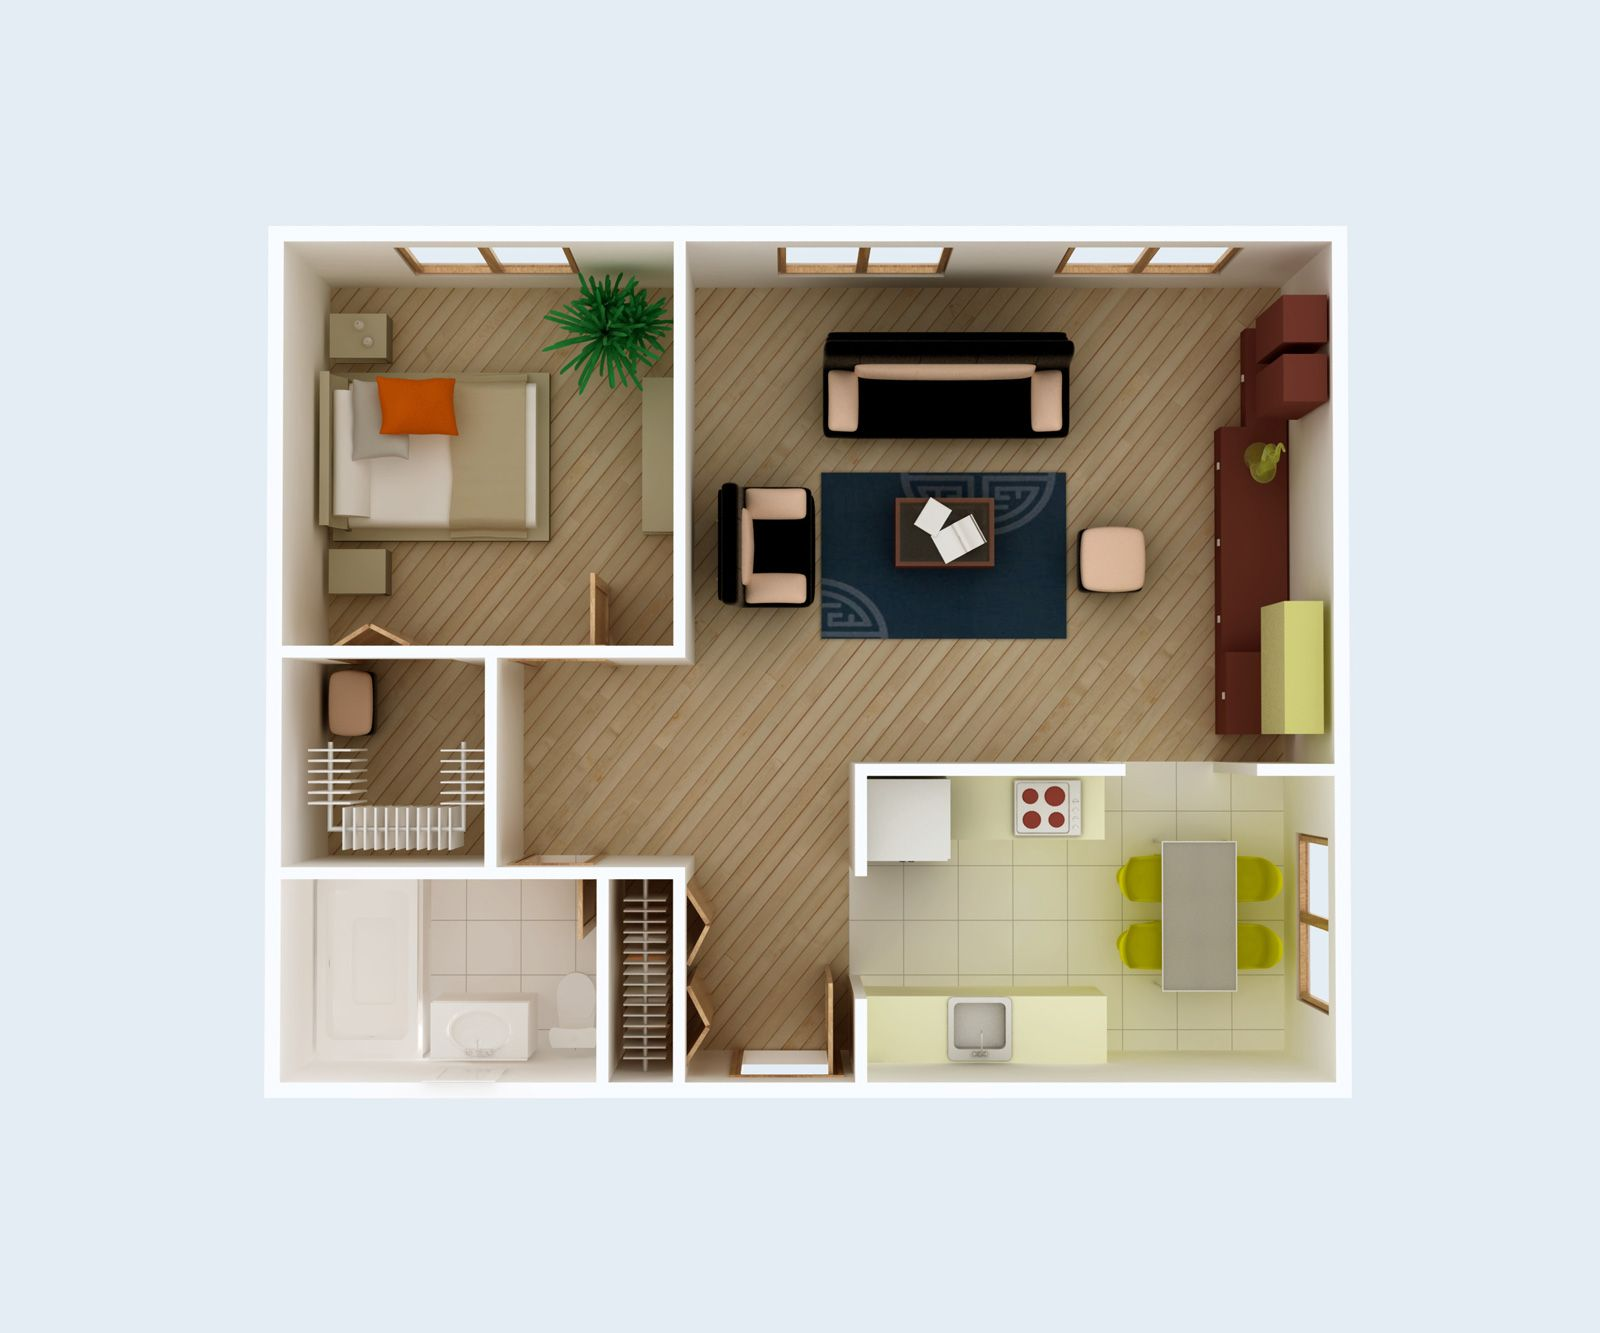 Interiors · remodel bedroom online · 3d house planssimple